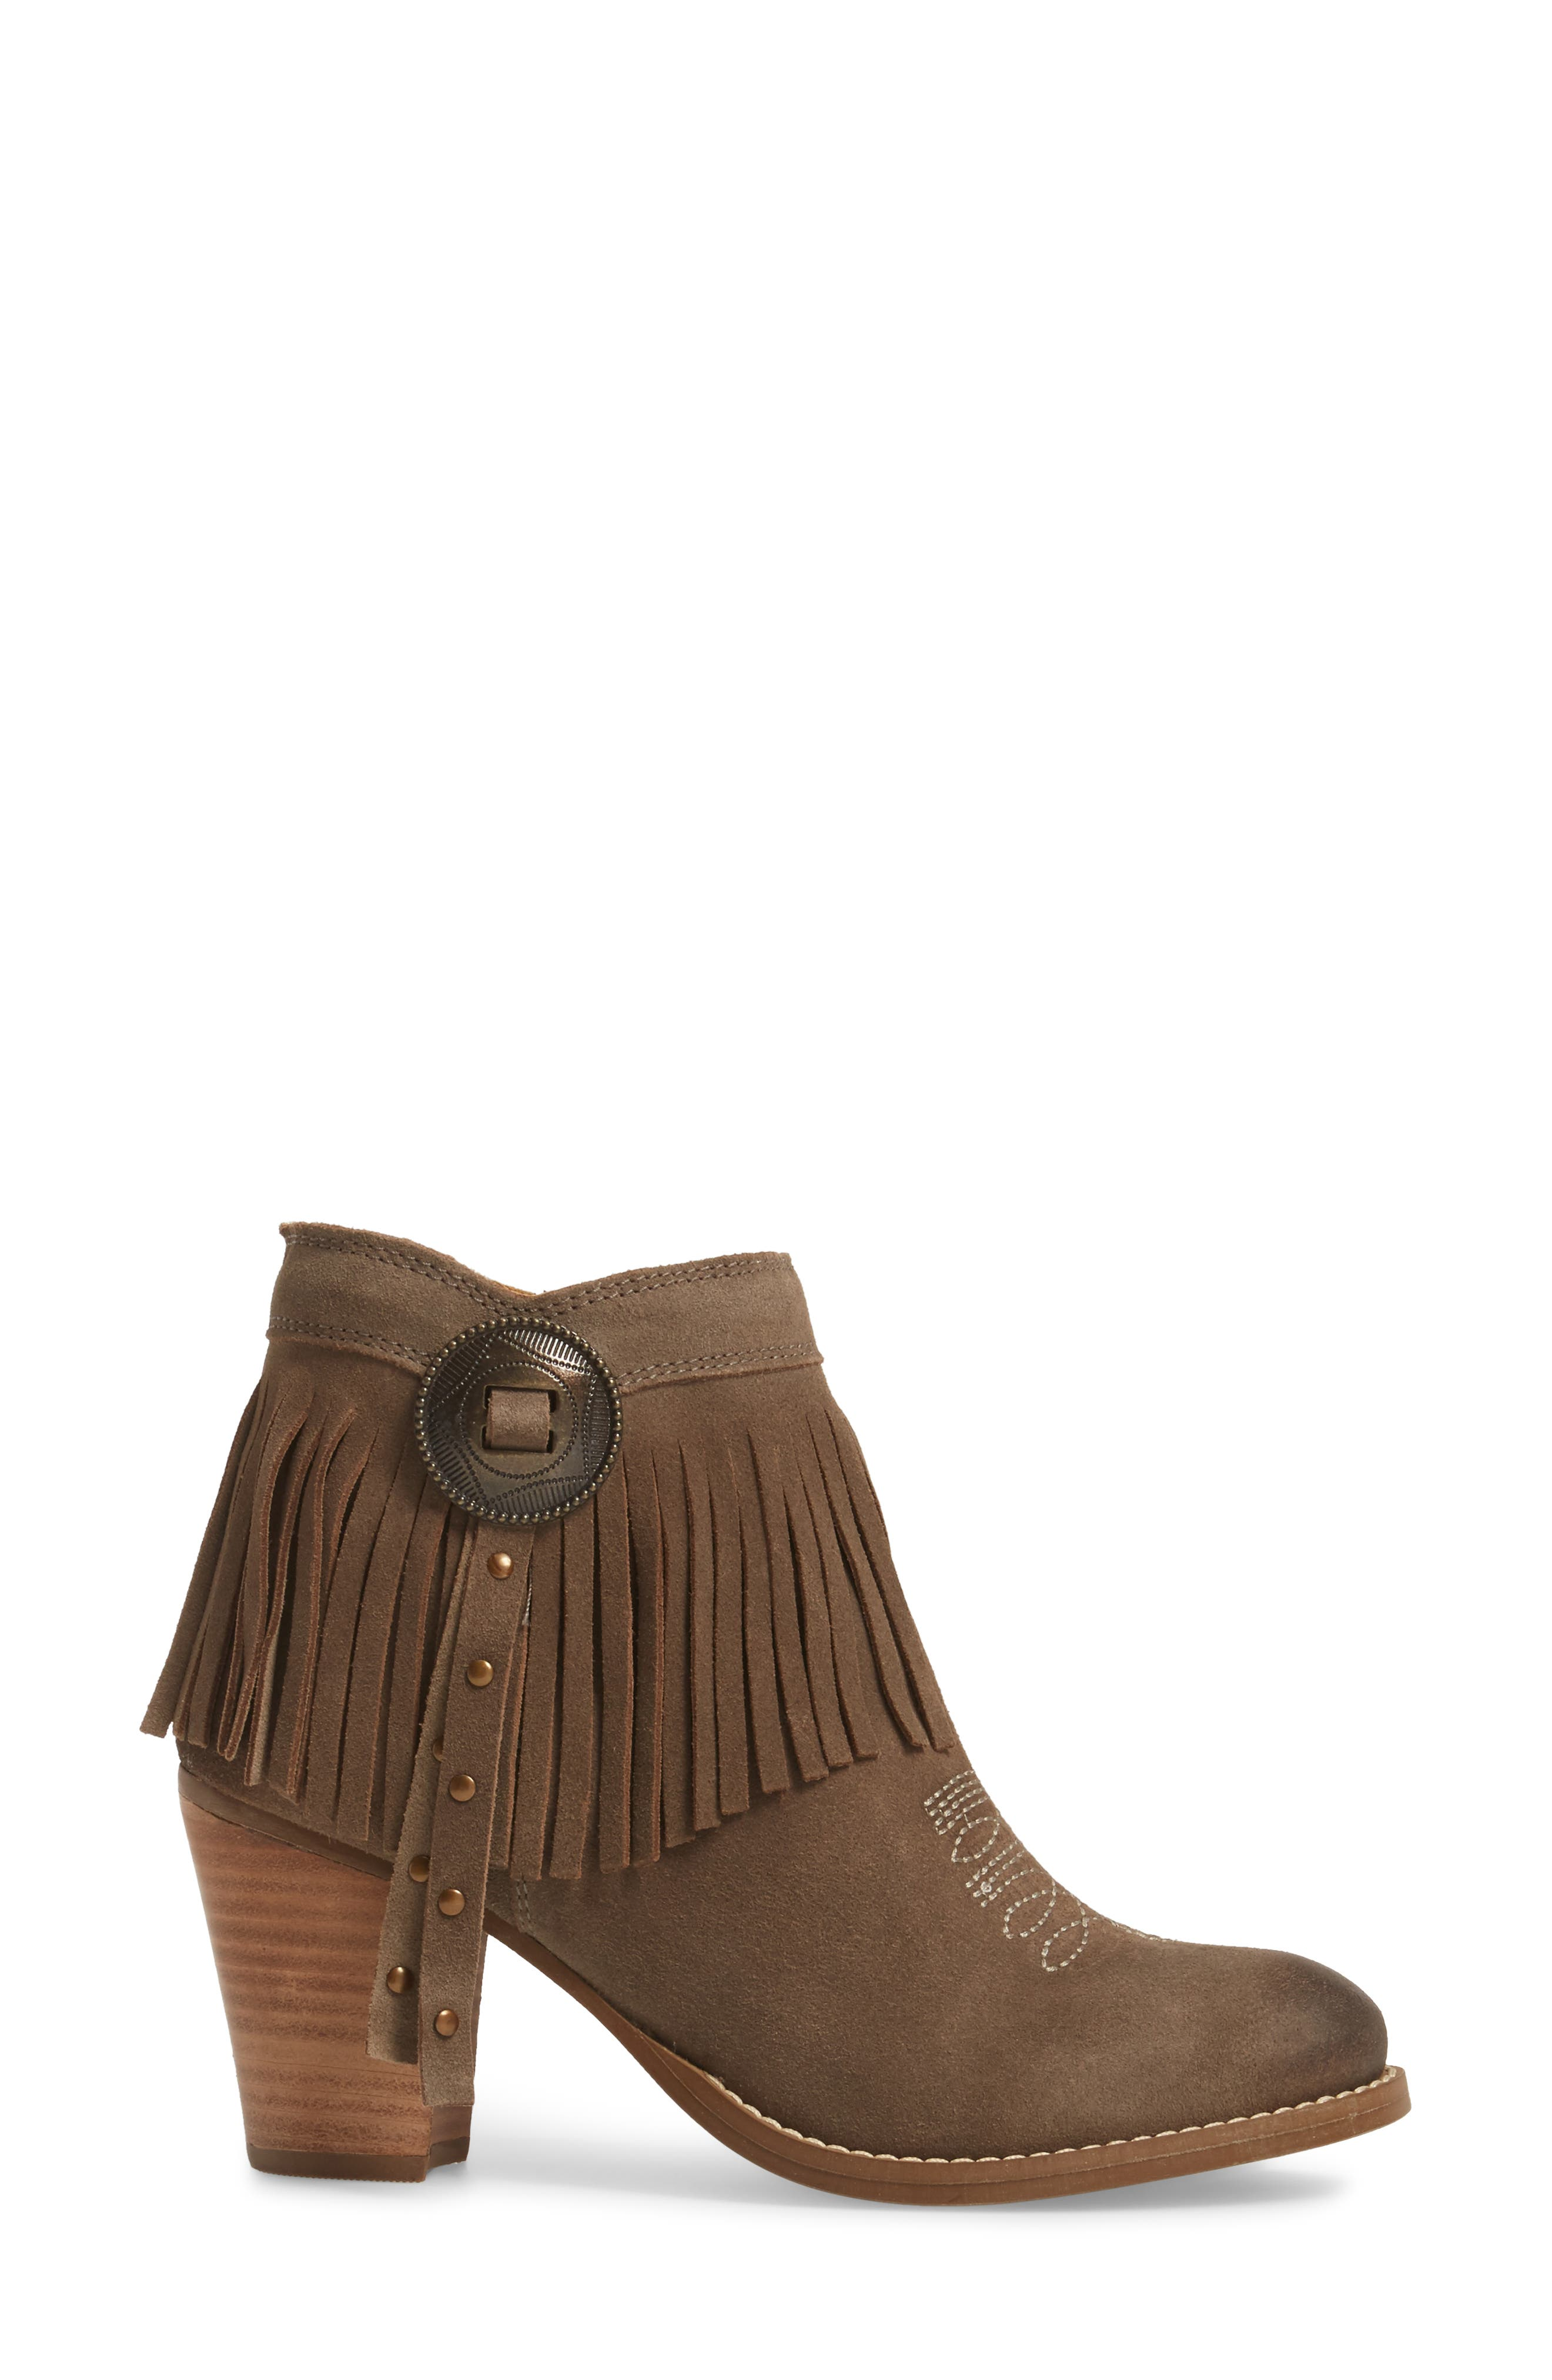 Unbridled Avery Bootie,                             Alternate thumbnail 3, color,                             200